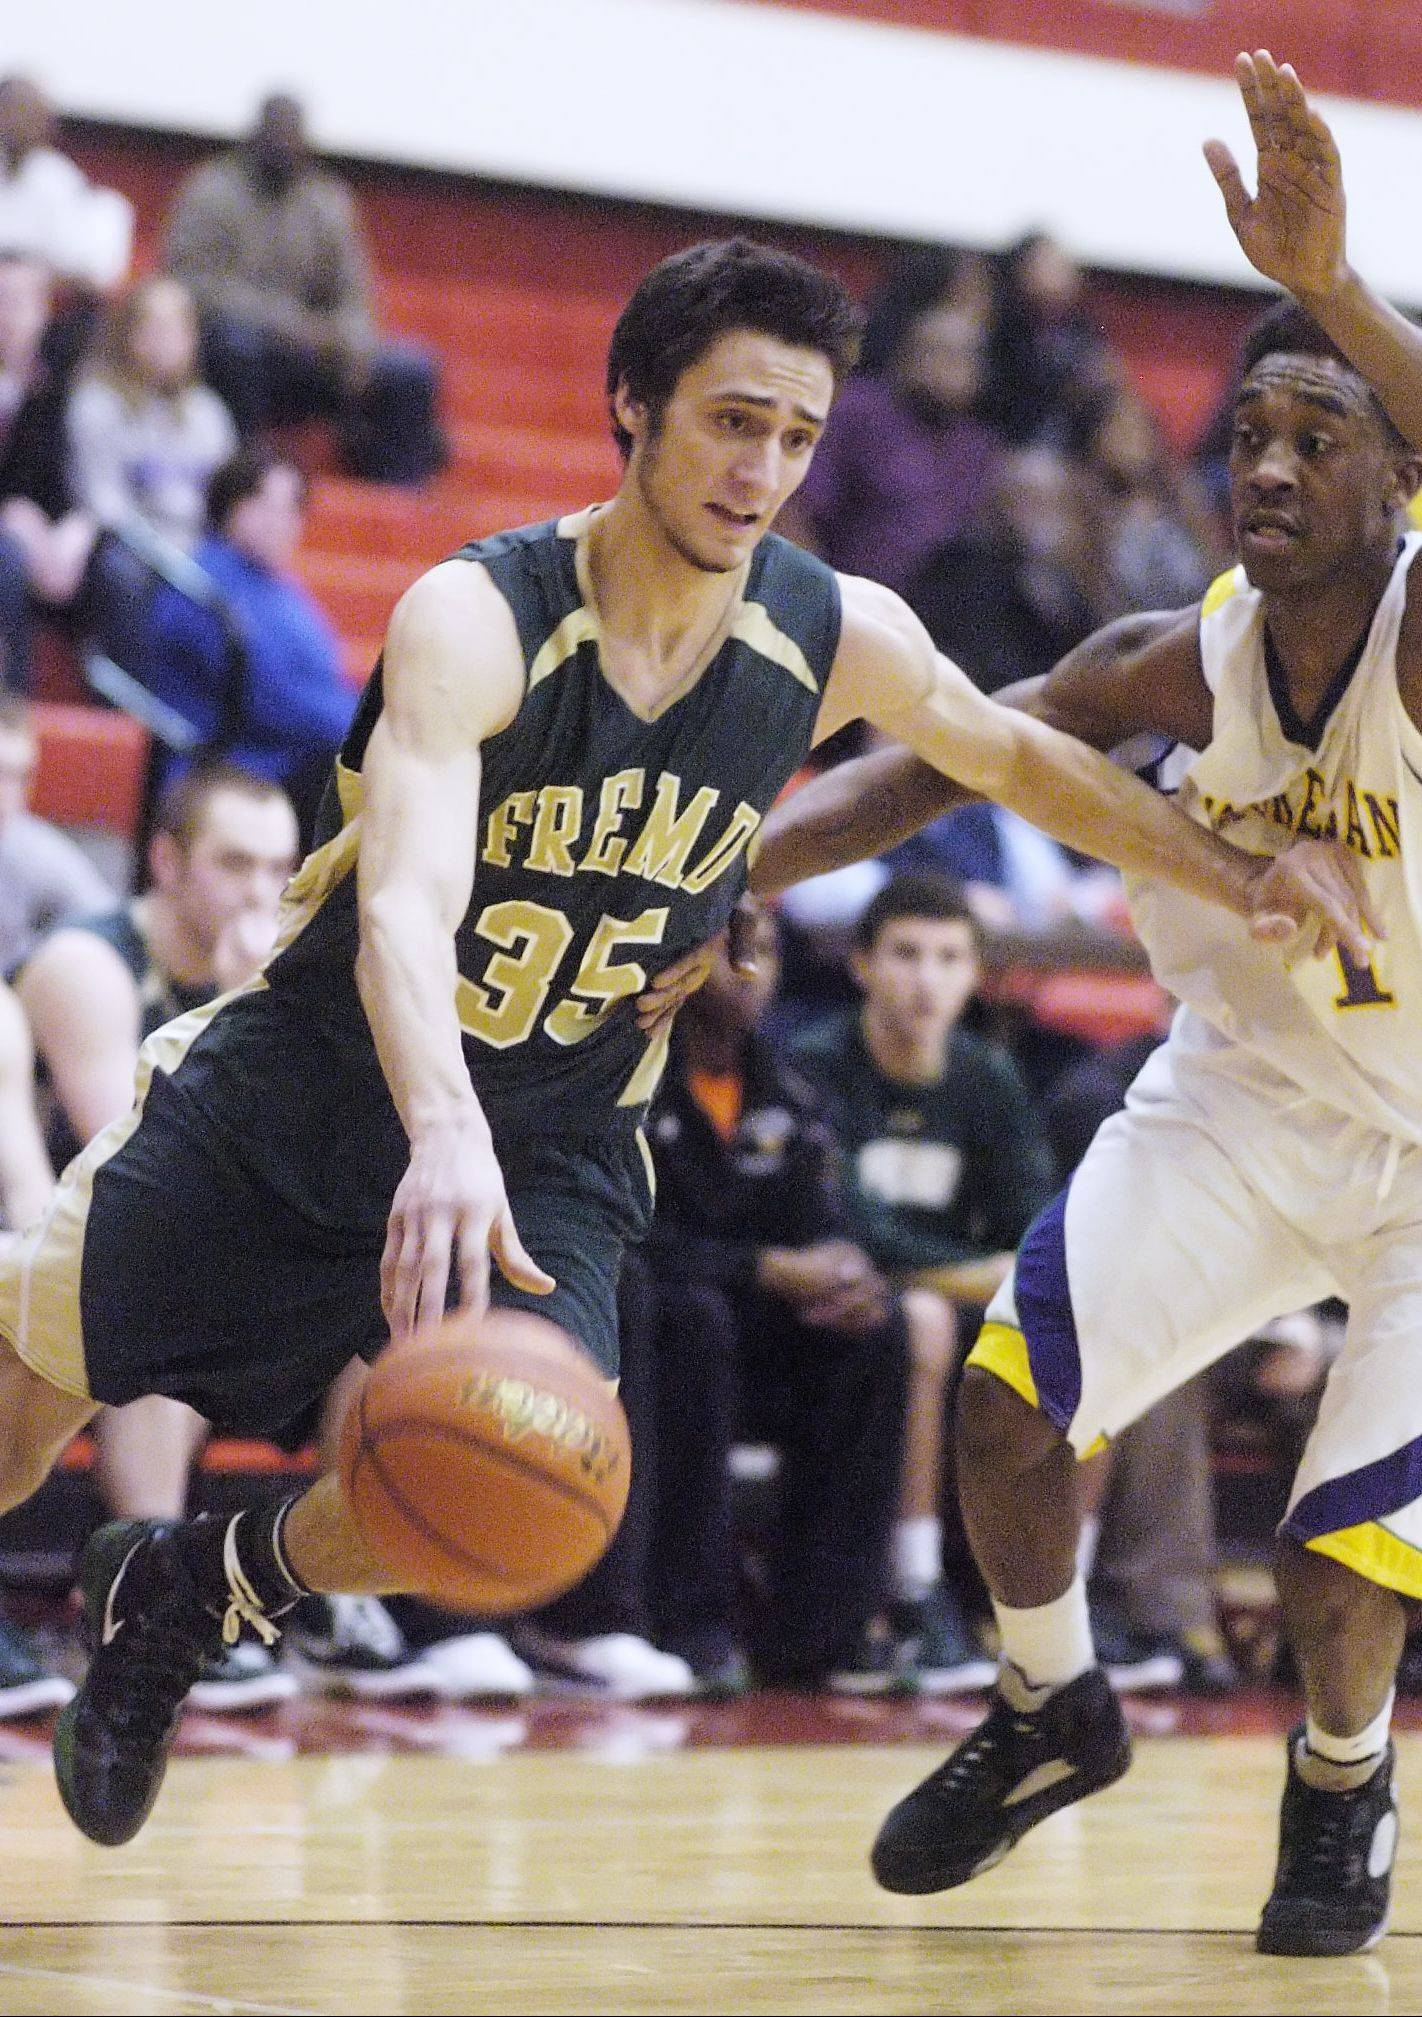 Fremd's Adam Gorecki, left, drives on Waukegan defender DeVonte Taylor during Tuesday's regional semifinal at Palatine. The No. 13 seed Vikings handled the No. 4 Bulldogs 71-54 to earn a spot in Friday's regional championship.